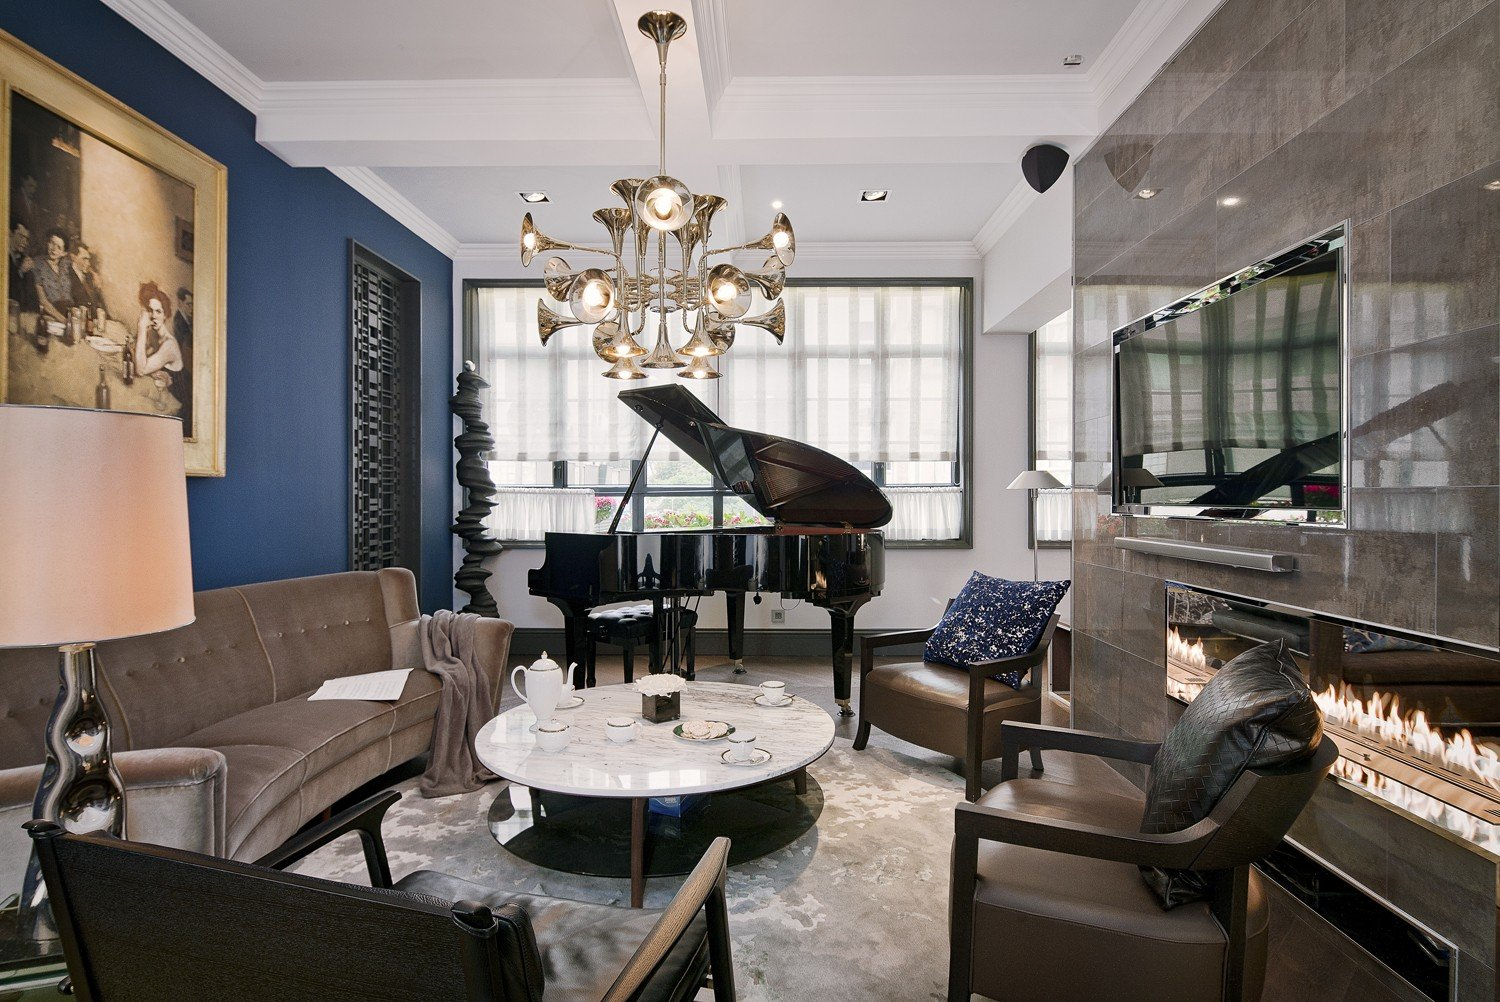 Ital Designs Hong Kong hotel-style glamour in a five-bedroom hong kong apartment